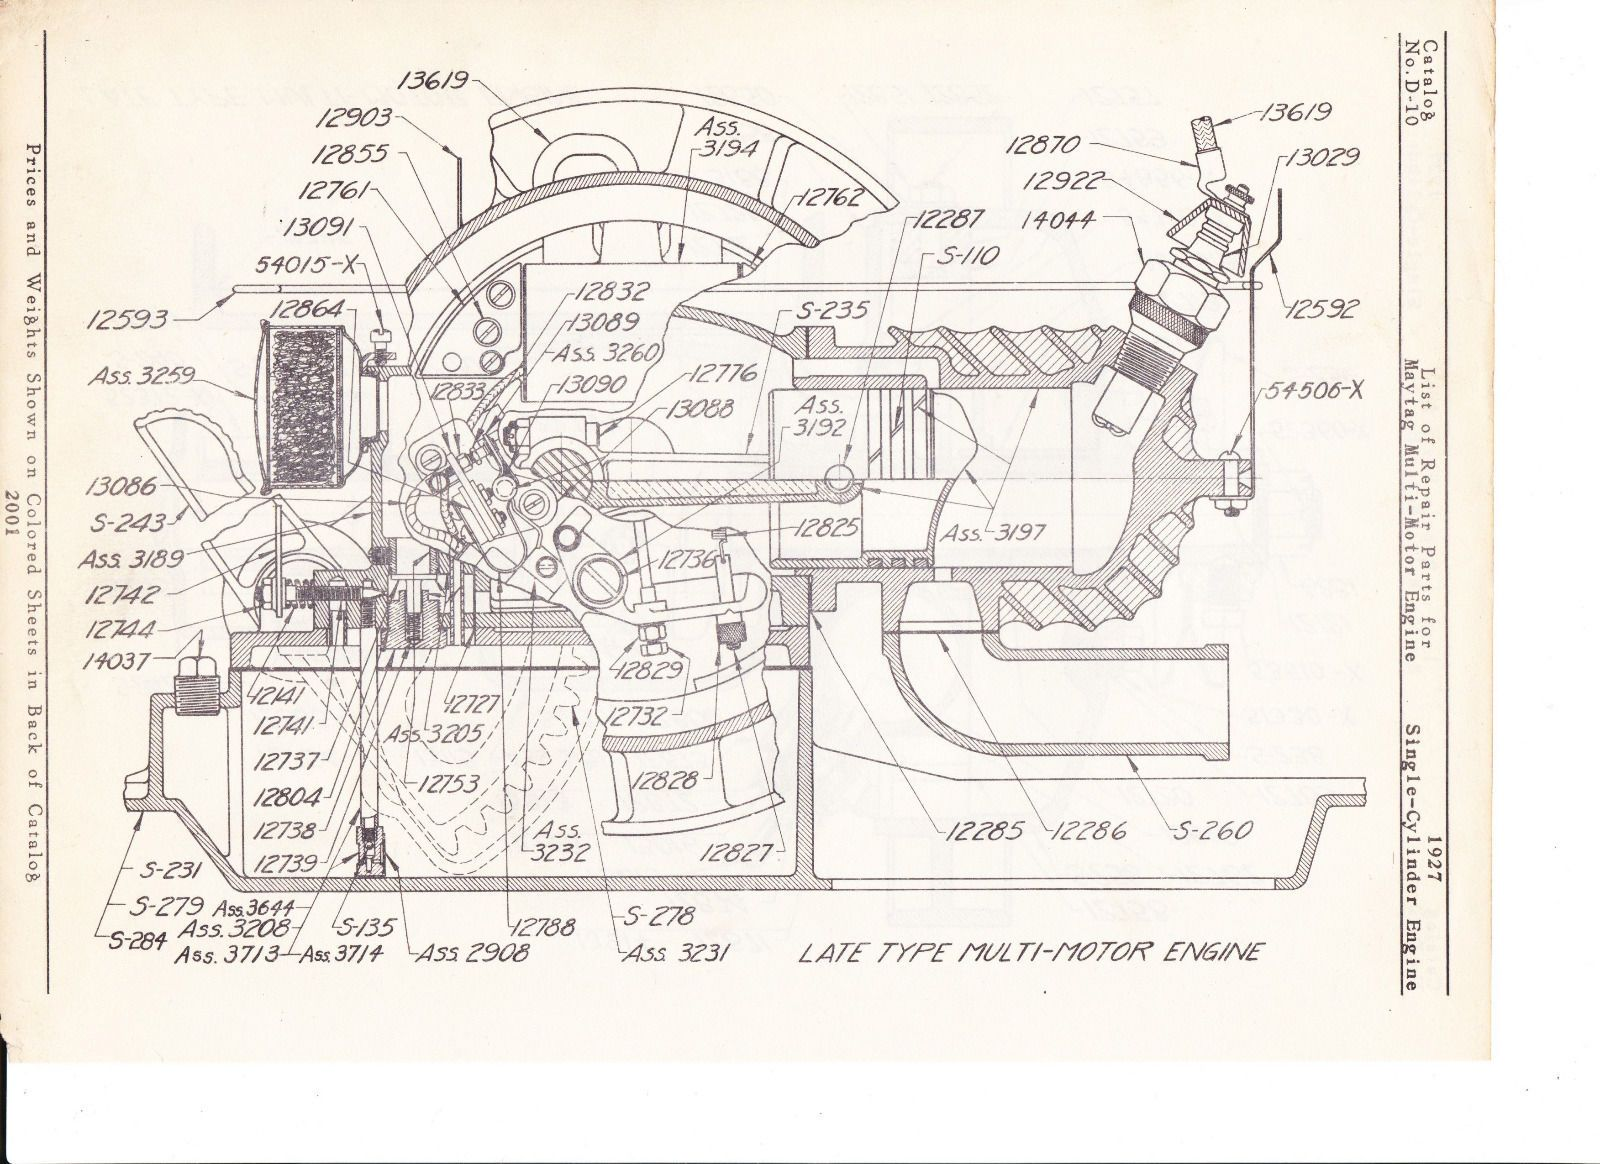 maytag gas motor diagram of 1927 model 92 hit miss | ebay